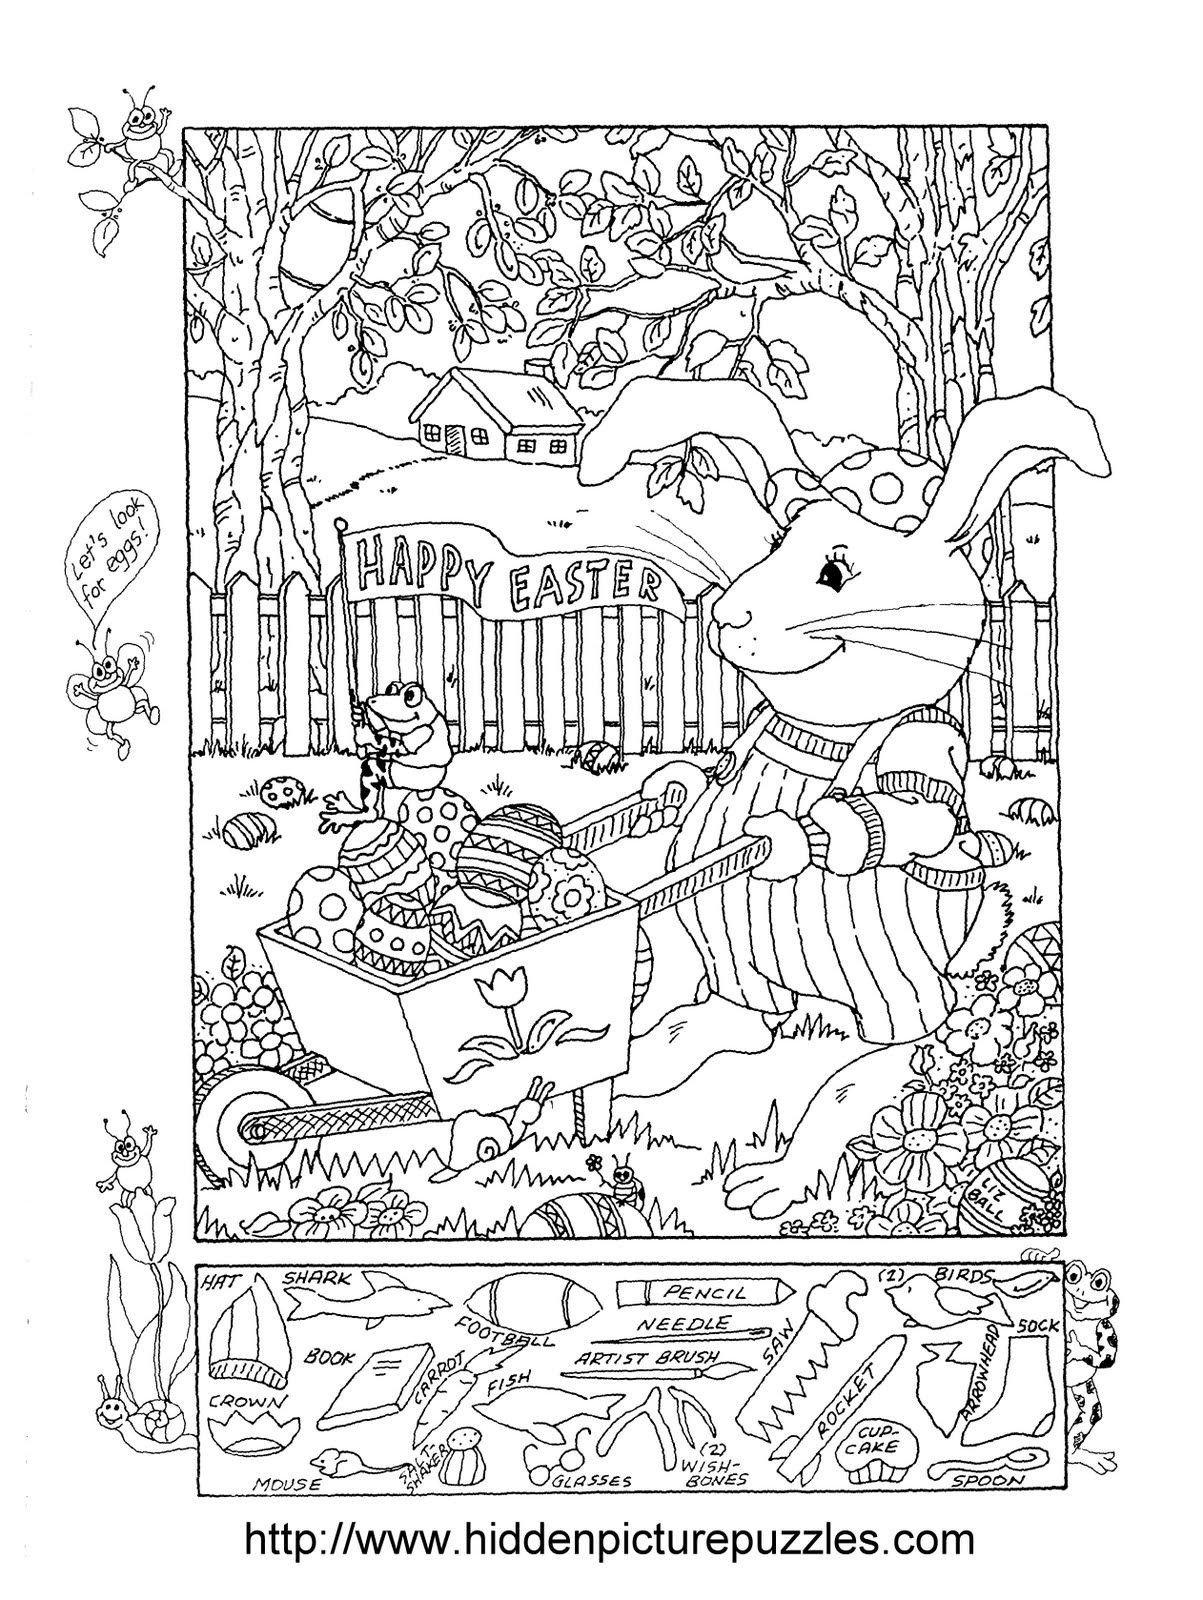 Free Hidden Picture Worksheets Easter Hidden Puzzle and Coloring Worksheets Mixed